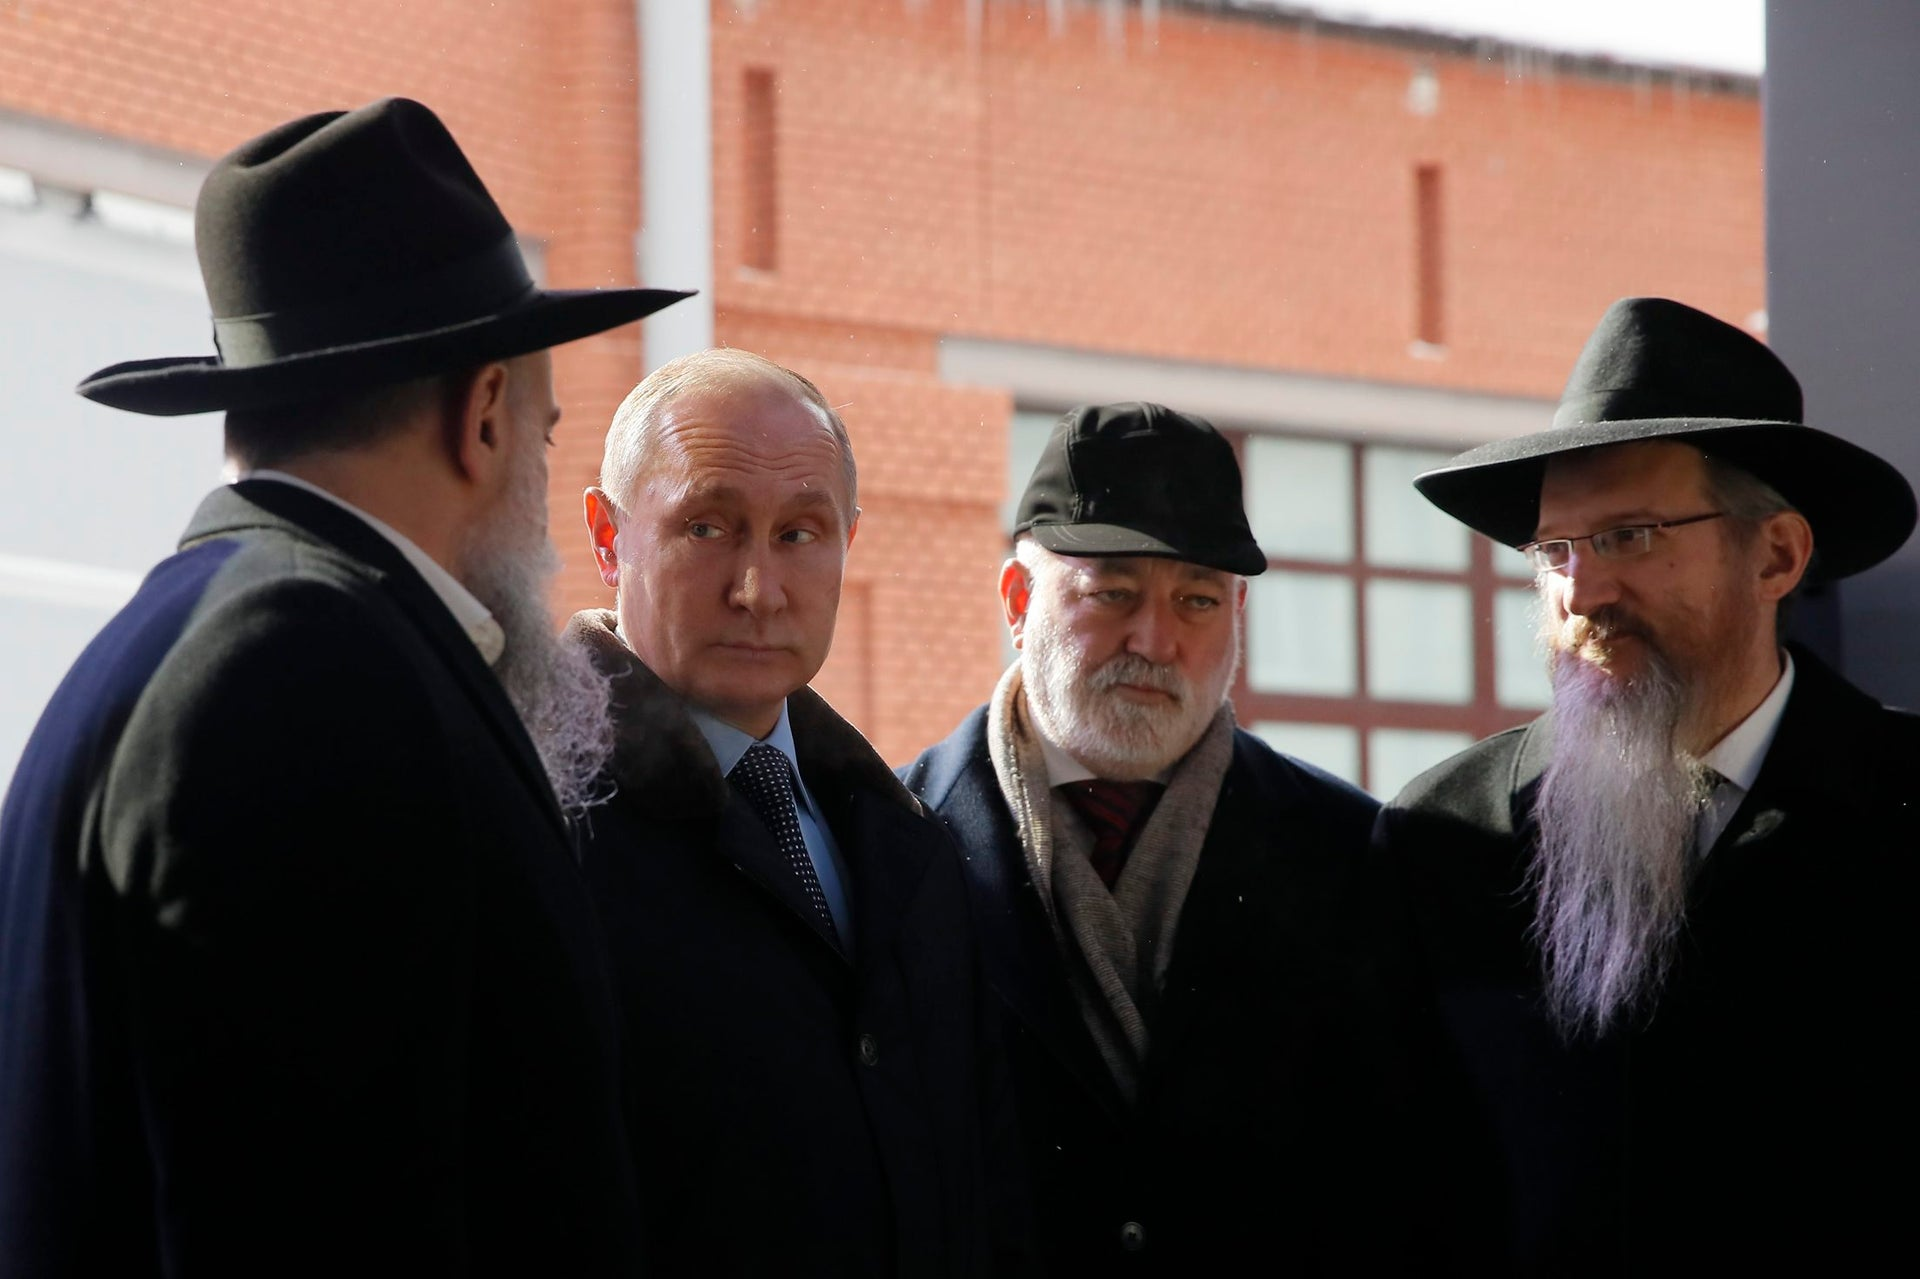 Russian President Vladimir Putin with Chief Rabbi of Russia Berel Lazar, right, at the Jewish Museum and Tolerance Center in Moscow, January 29, 2018.